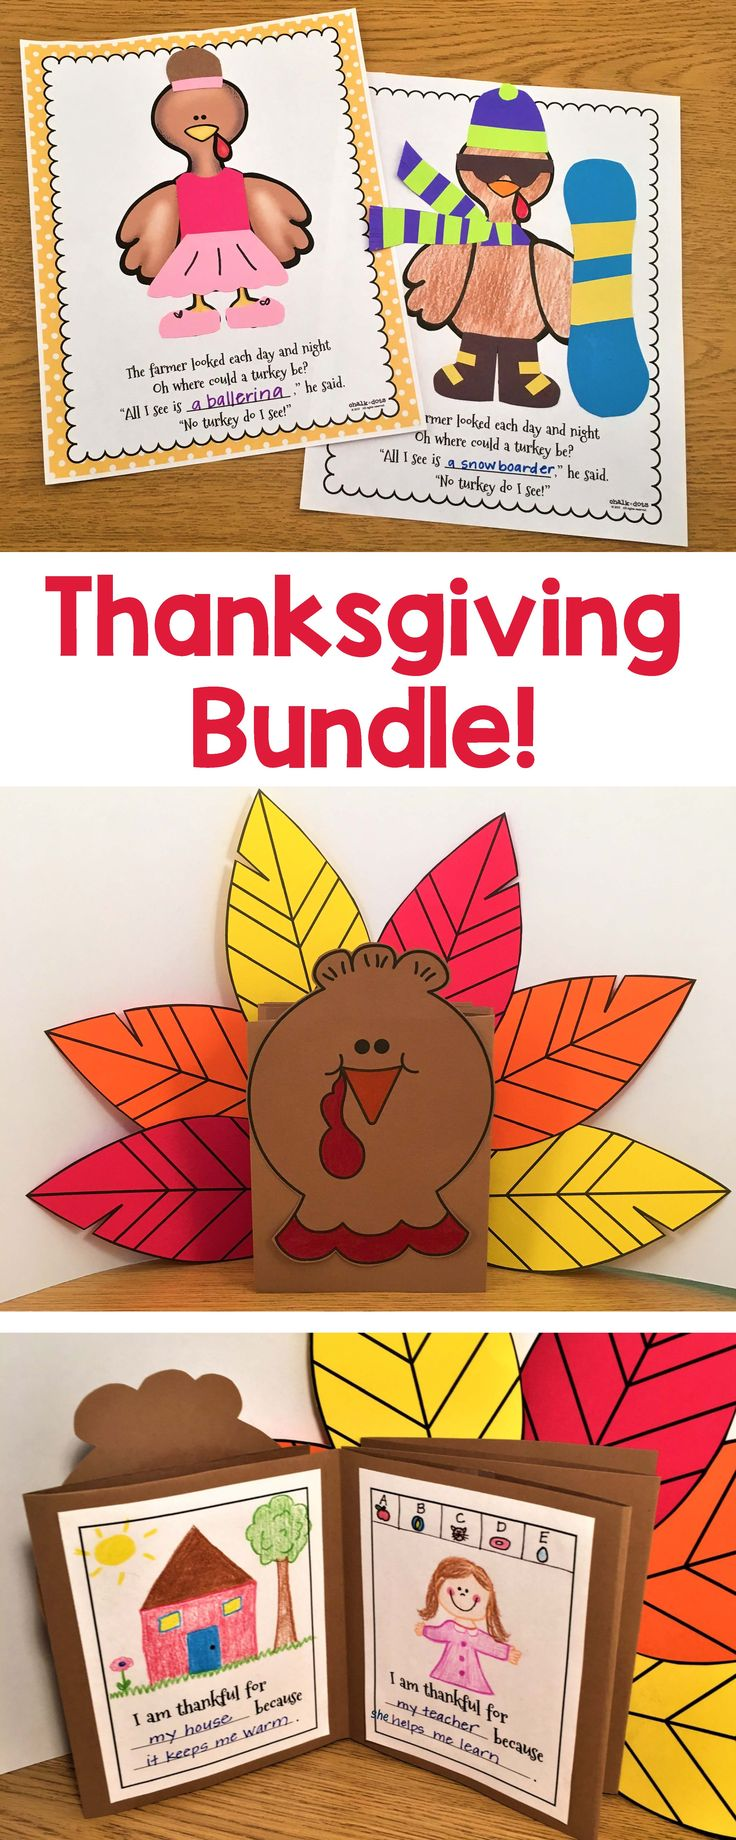 Save over 25% with this cute Thanksgiving bundle. It includes fun writing, art, and math printables and activities to celebrate Thanksgiving!